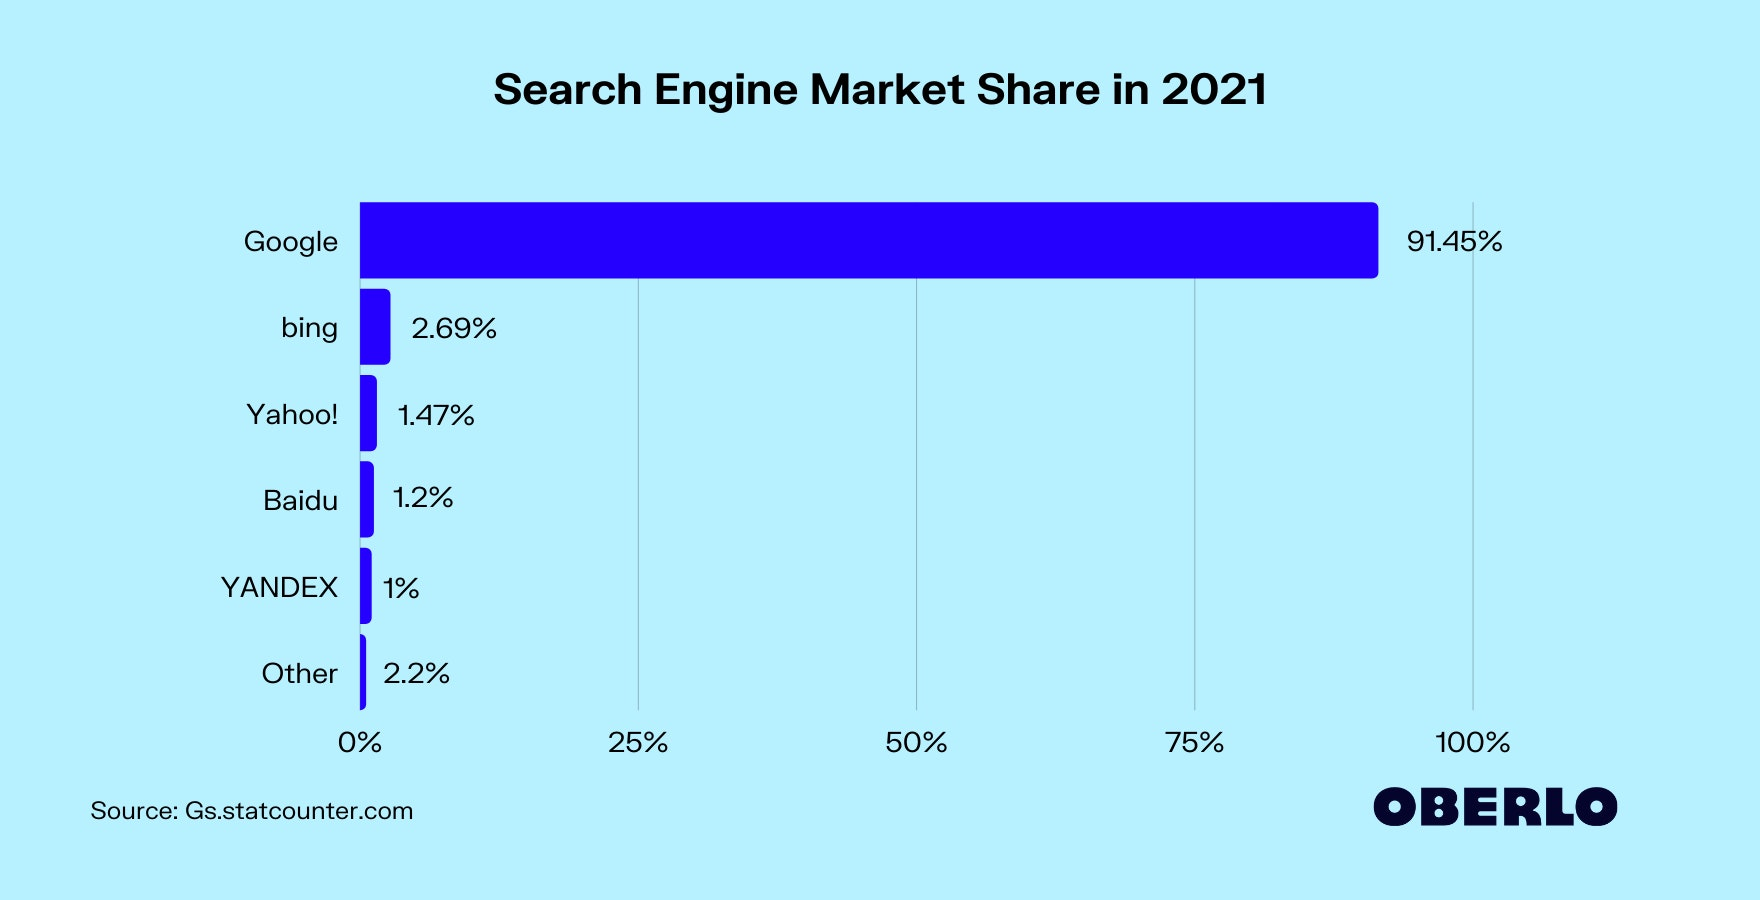 Search Engine Market Share in 2021